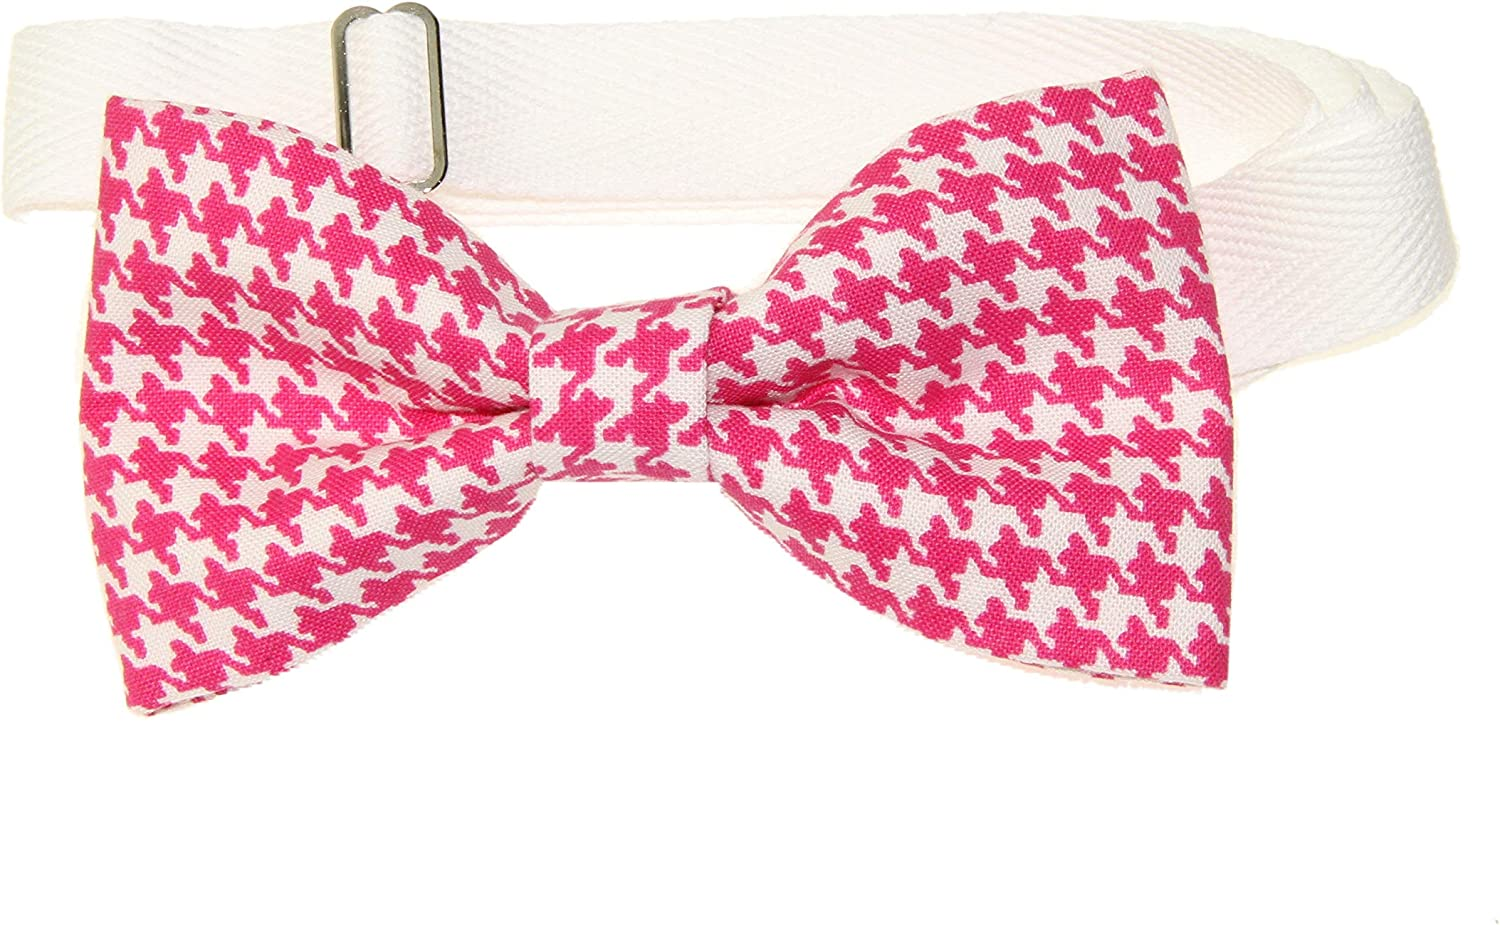 Men's Pink/White Houndstooth Pre-Tied Adjustable Cotton Bow Tie